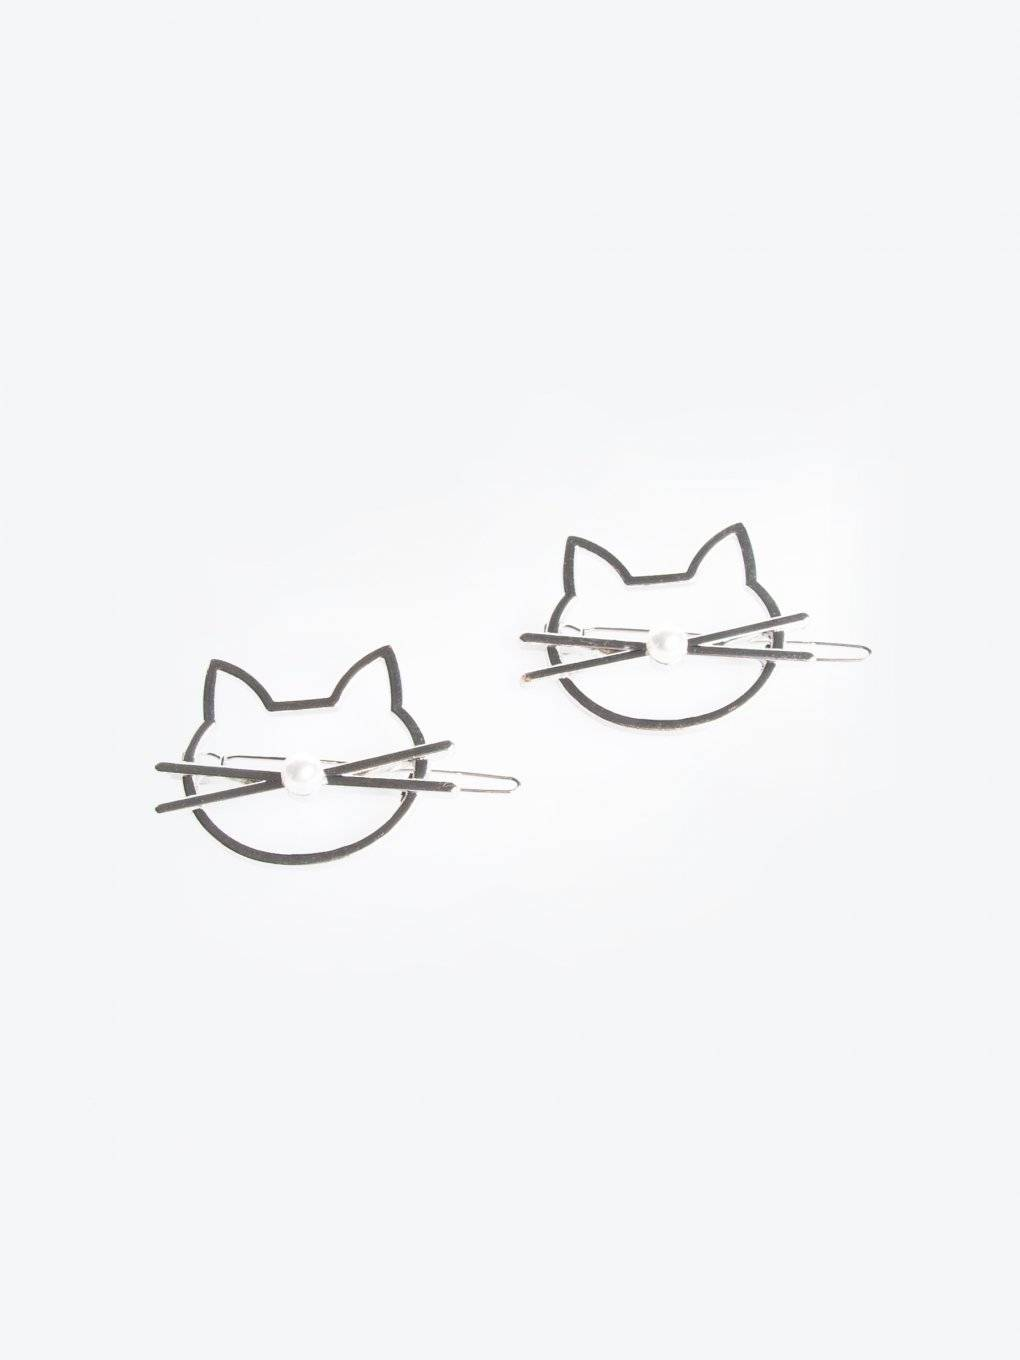 2-pack of kitty hairgrips